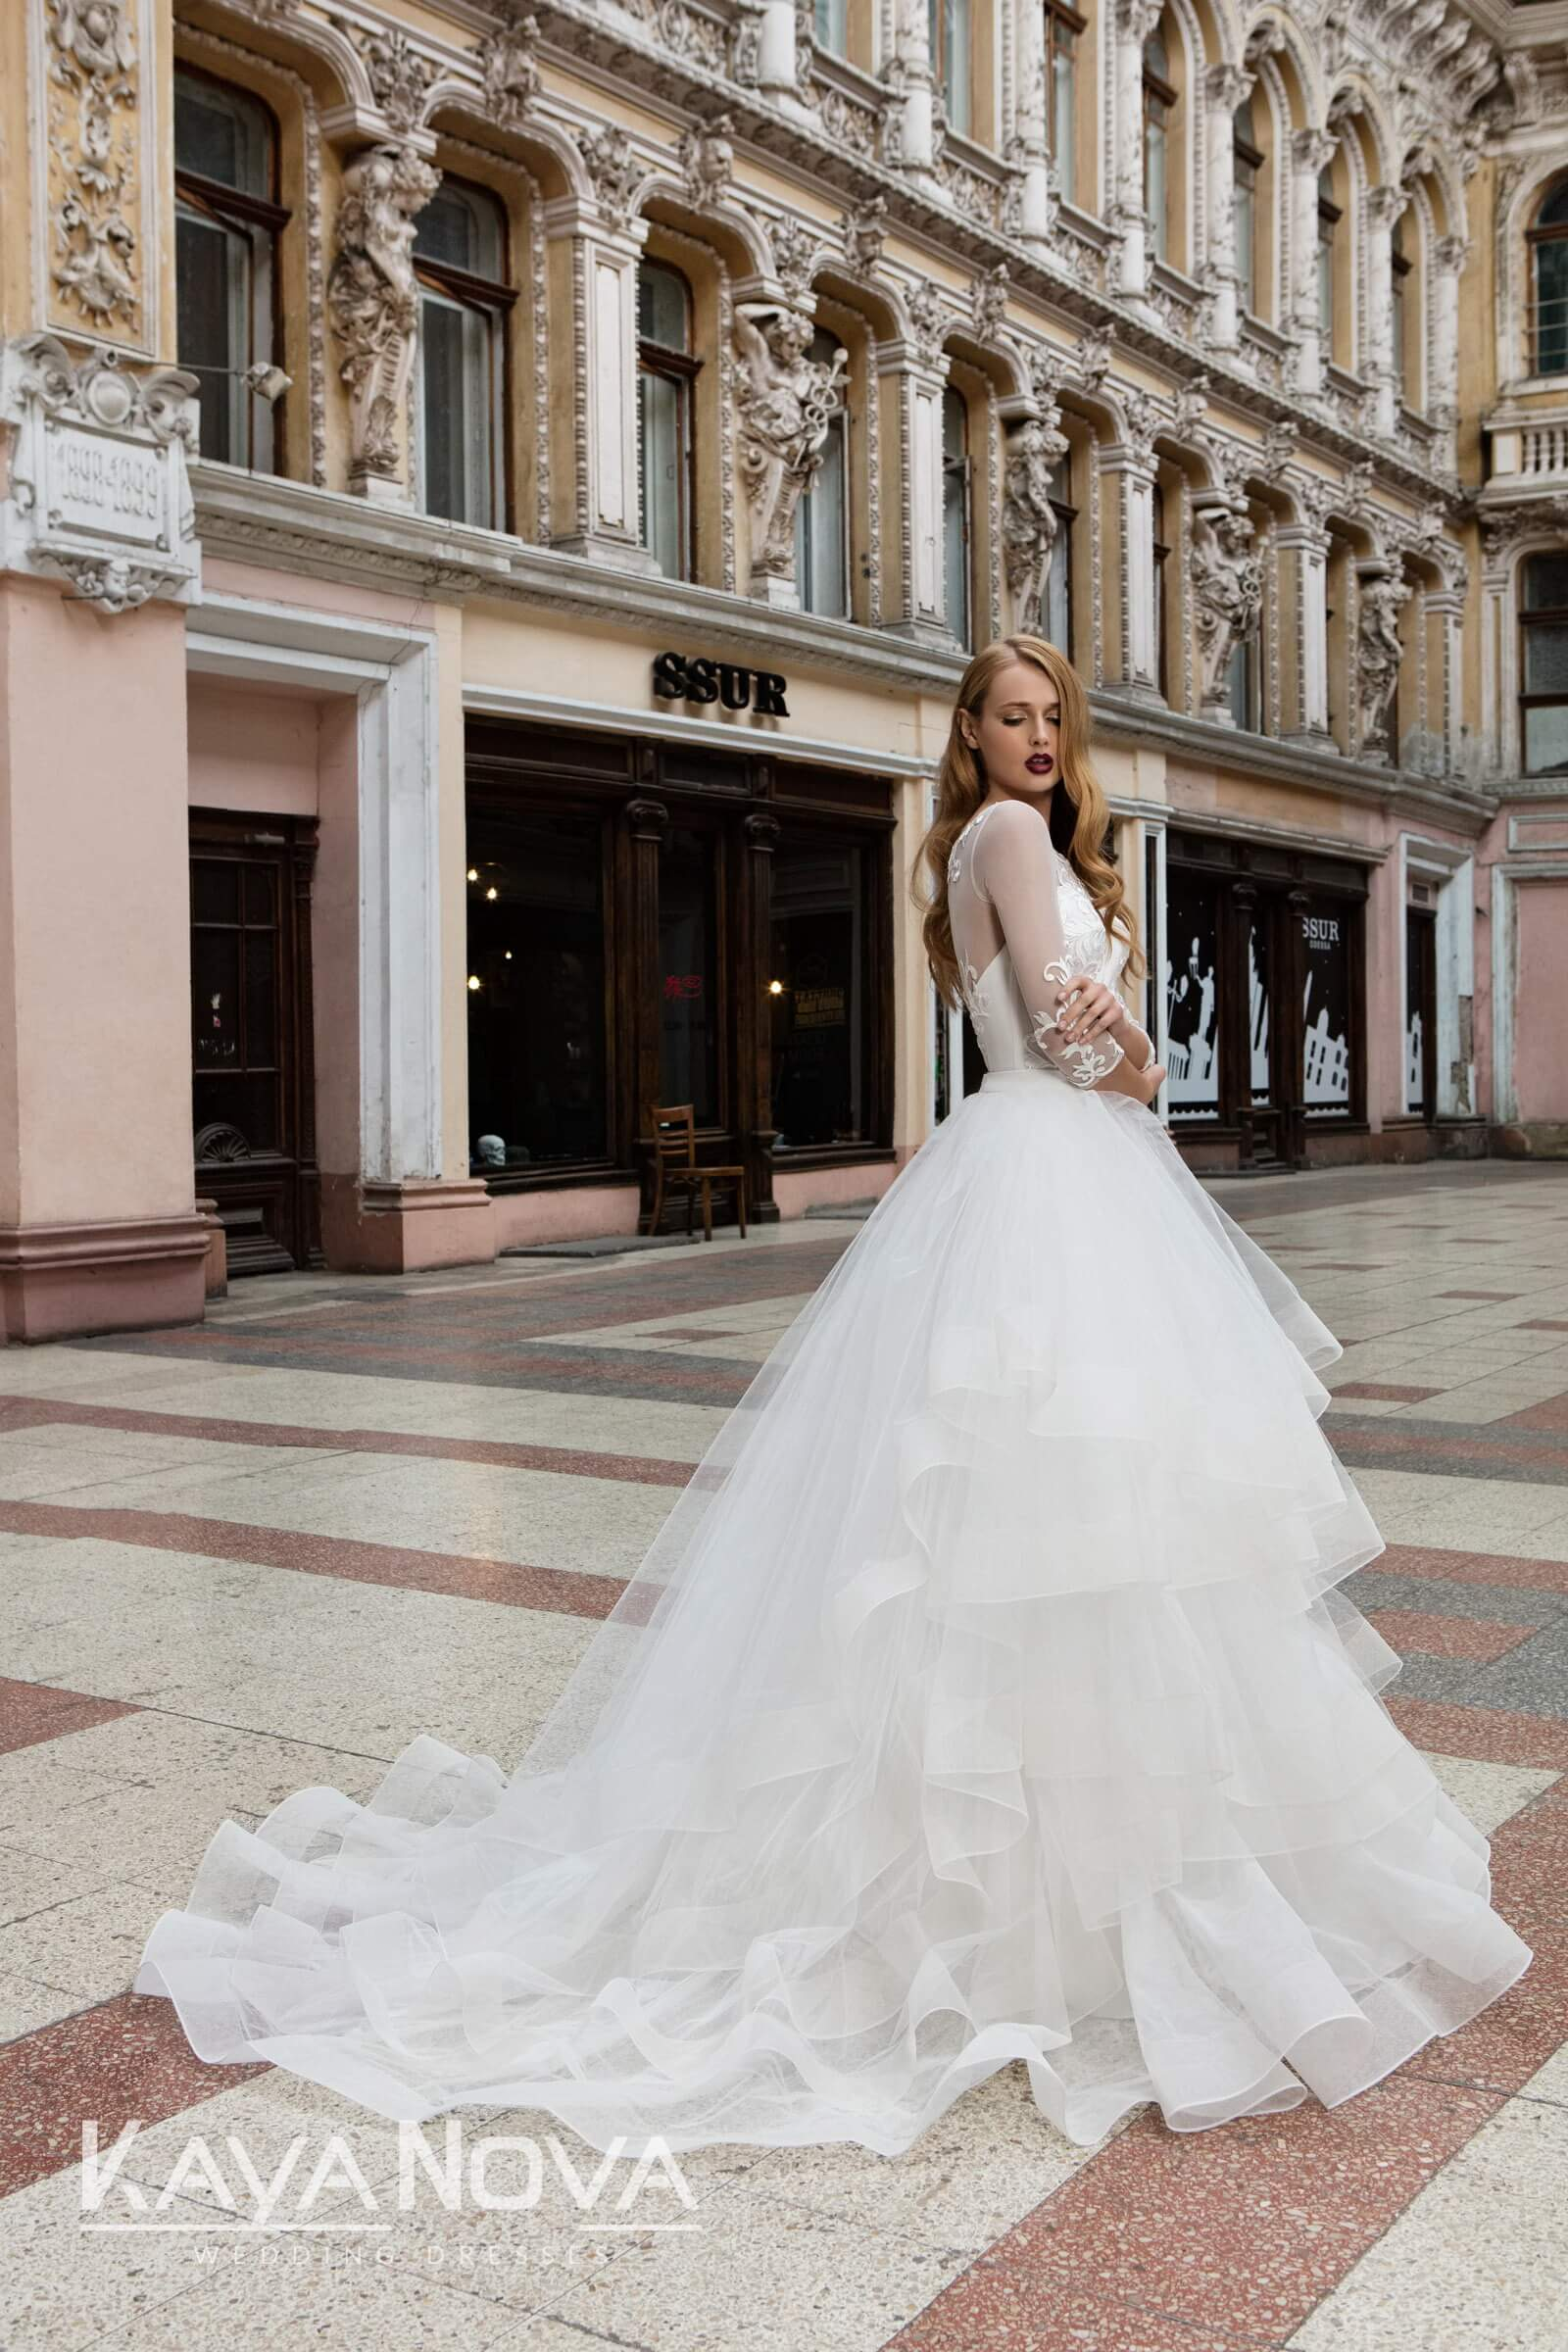 https://kayawedding.com/images/stories/virtuemart/product/Anetta + tulle skirt8.jpg